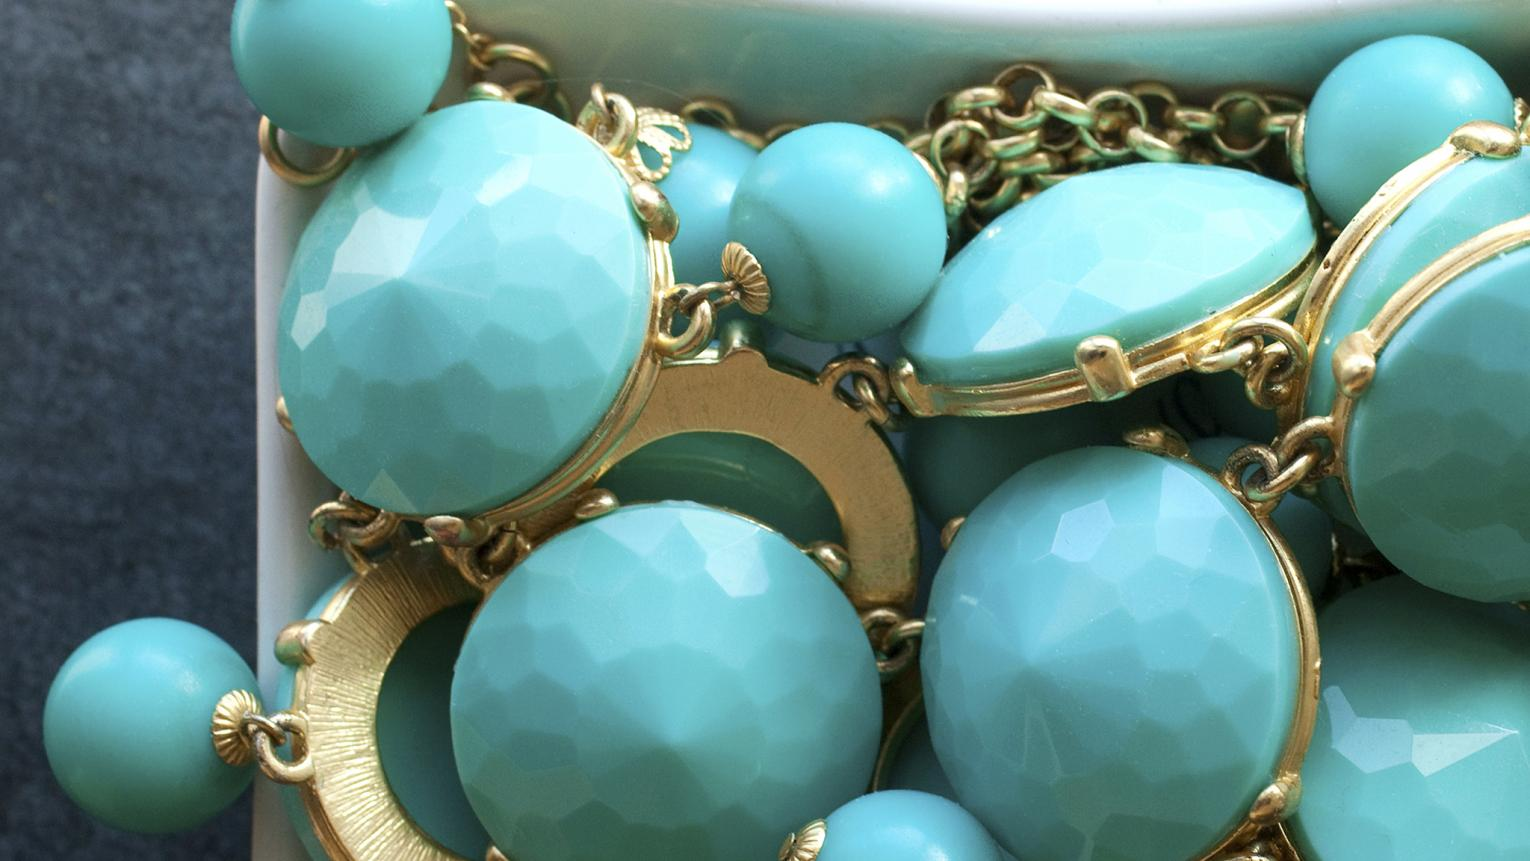 Turquoise jewels in a white porcelain dish.